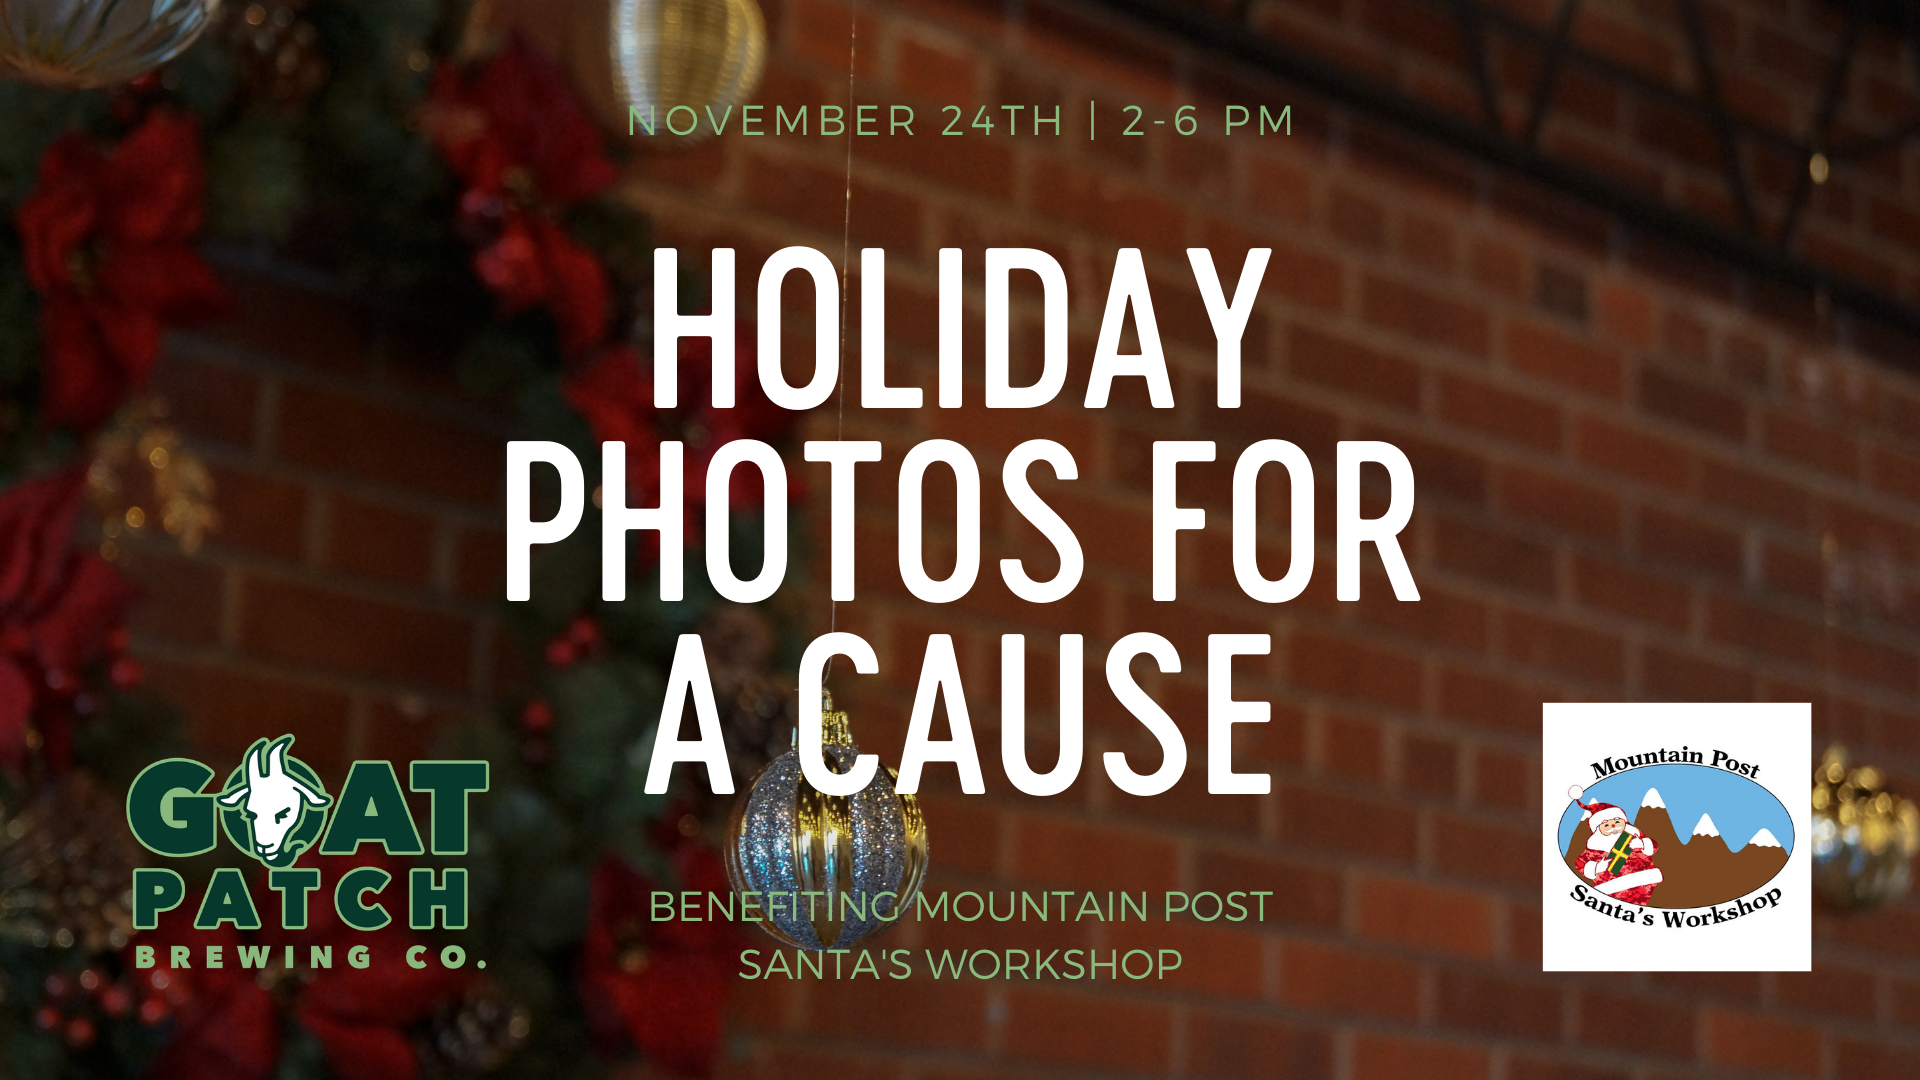 HOLIDAY PHOTOS FOR A CAUSE FB EVENT COVER.png